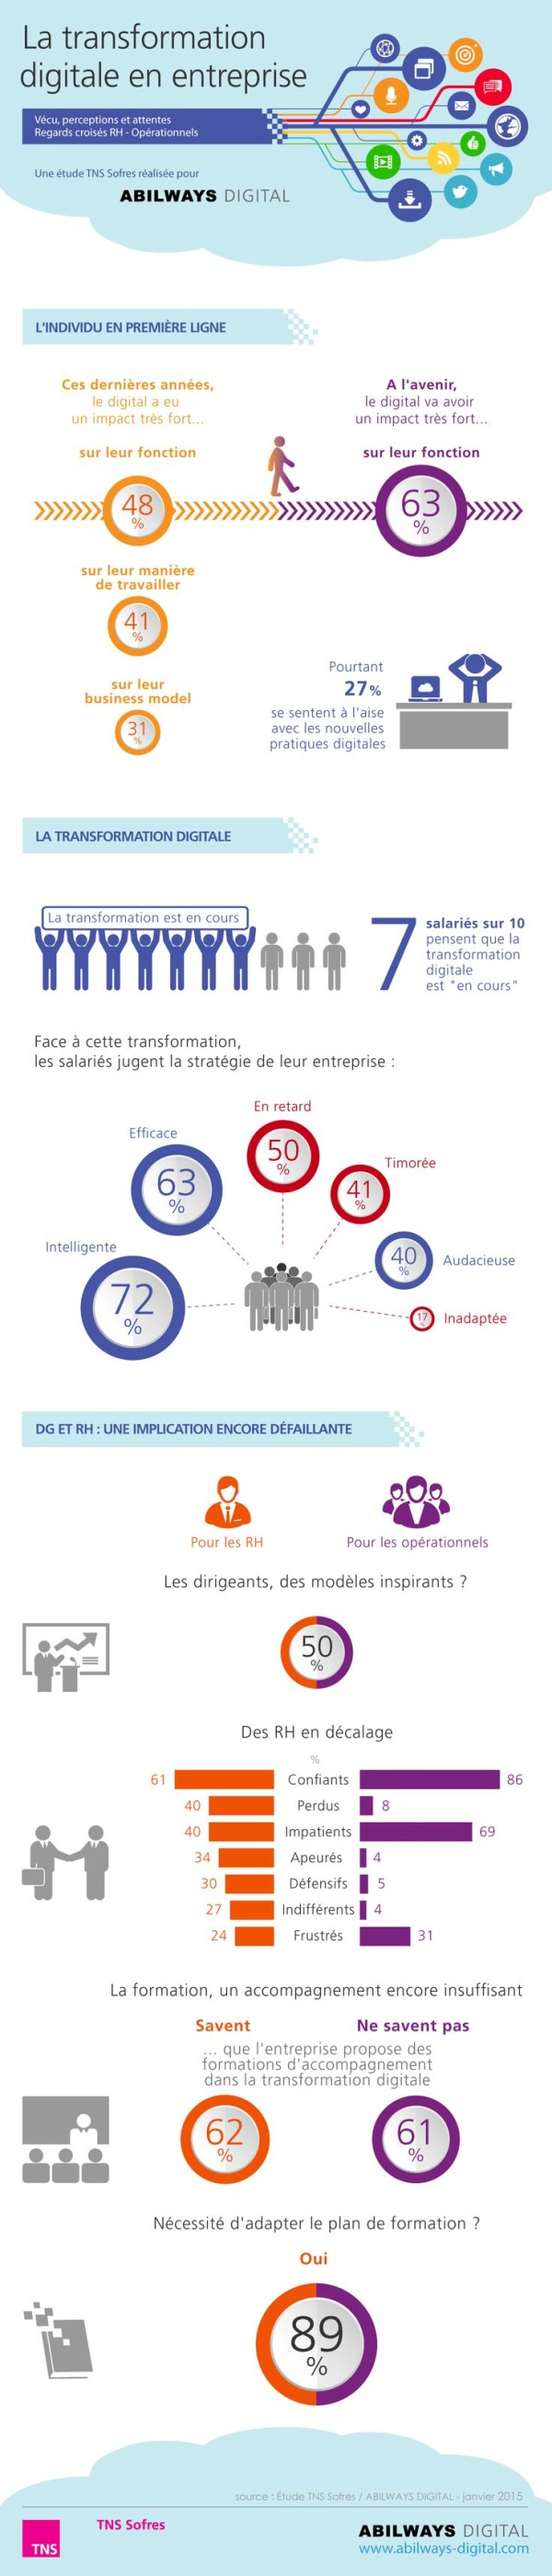 ABILWAYS-DIGITAL-infographie-transformation-digitale-600x2800